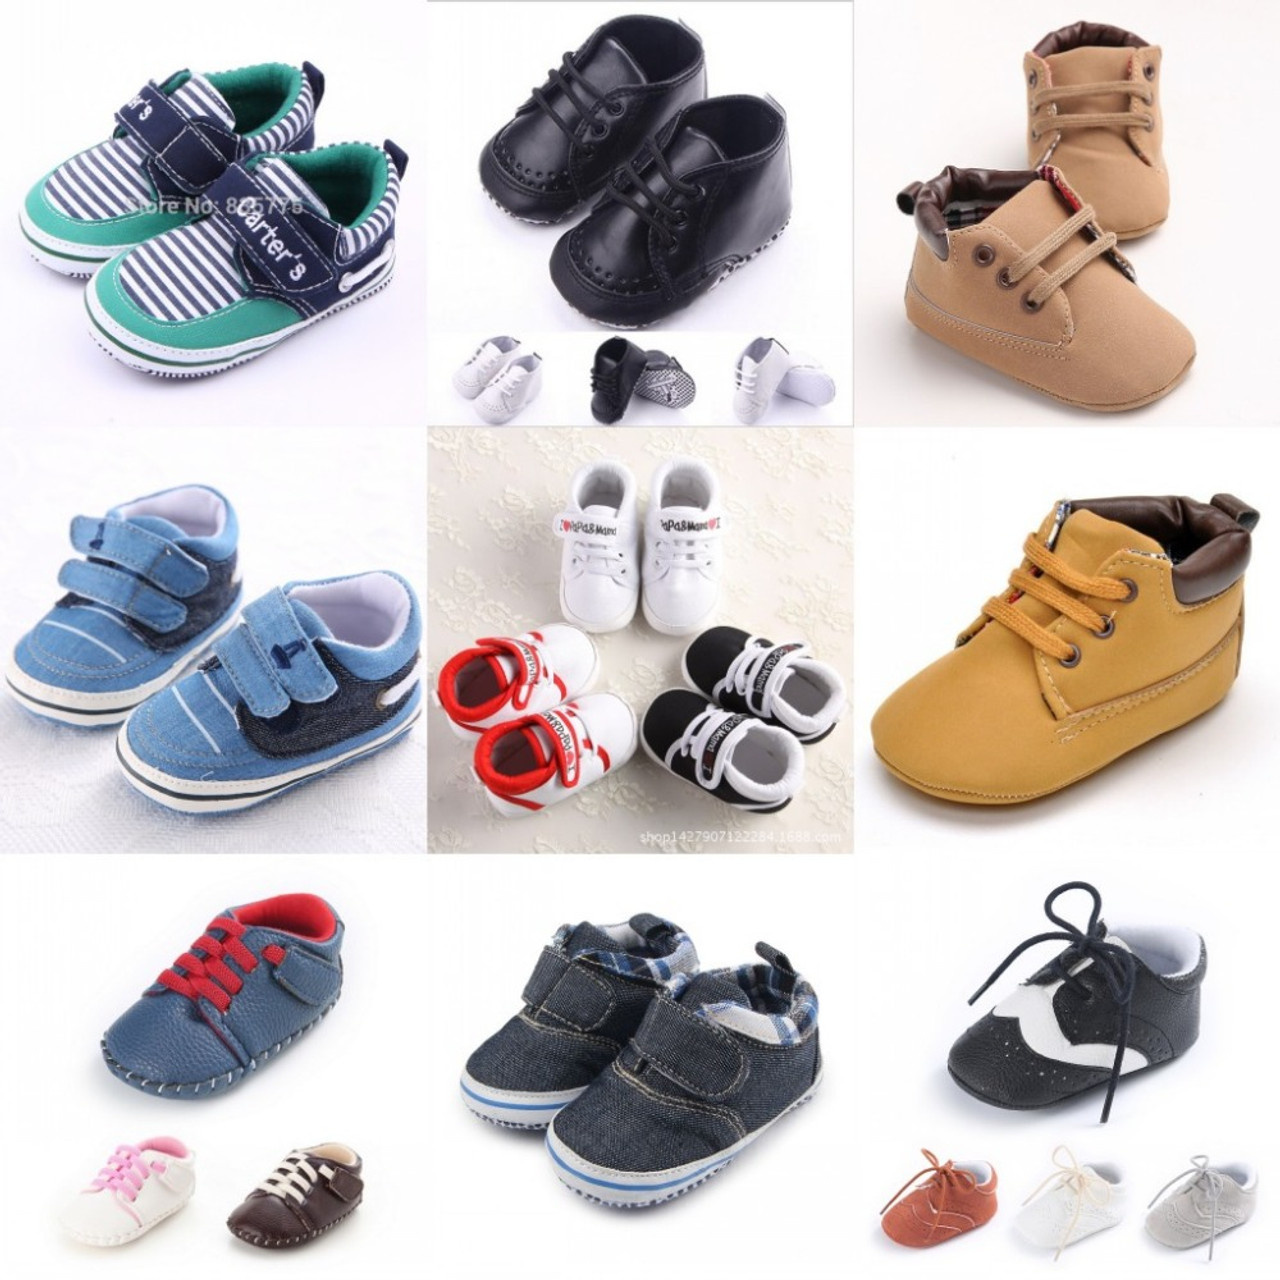 6955013b4e Newborn Baby Shoes Boys First Walker Bebe Infant Sneakers Carter's Sport  Shoe Toddler Crib Shoe Boots ...